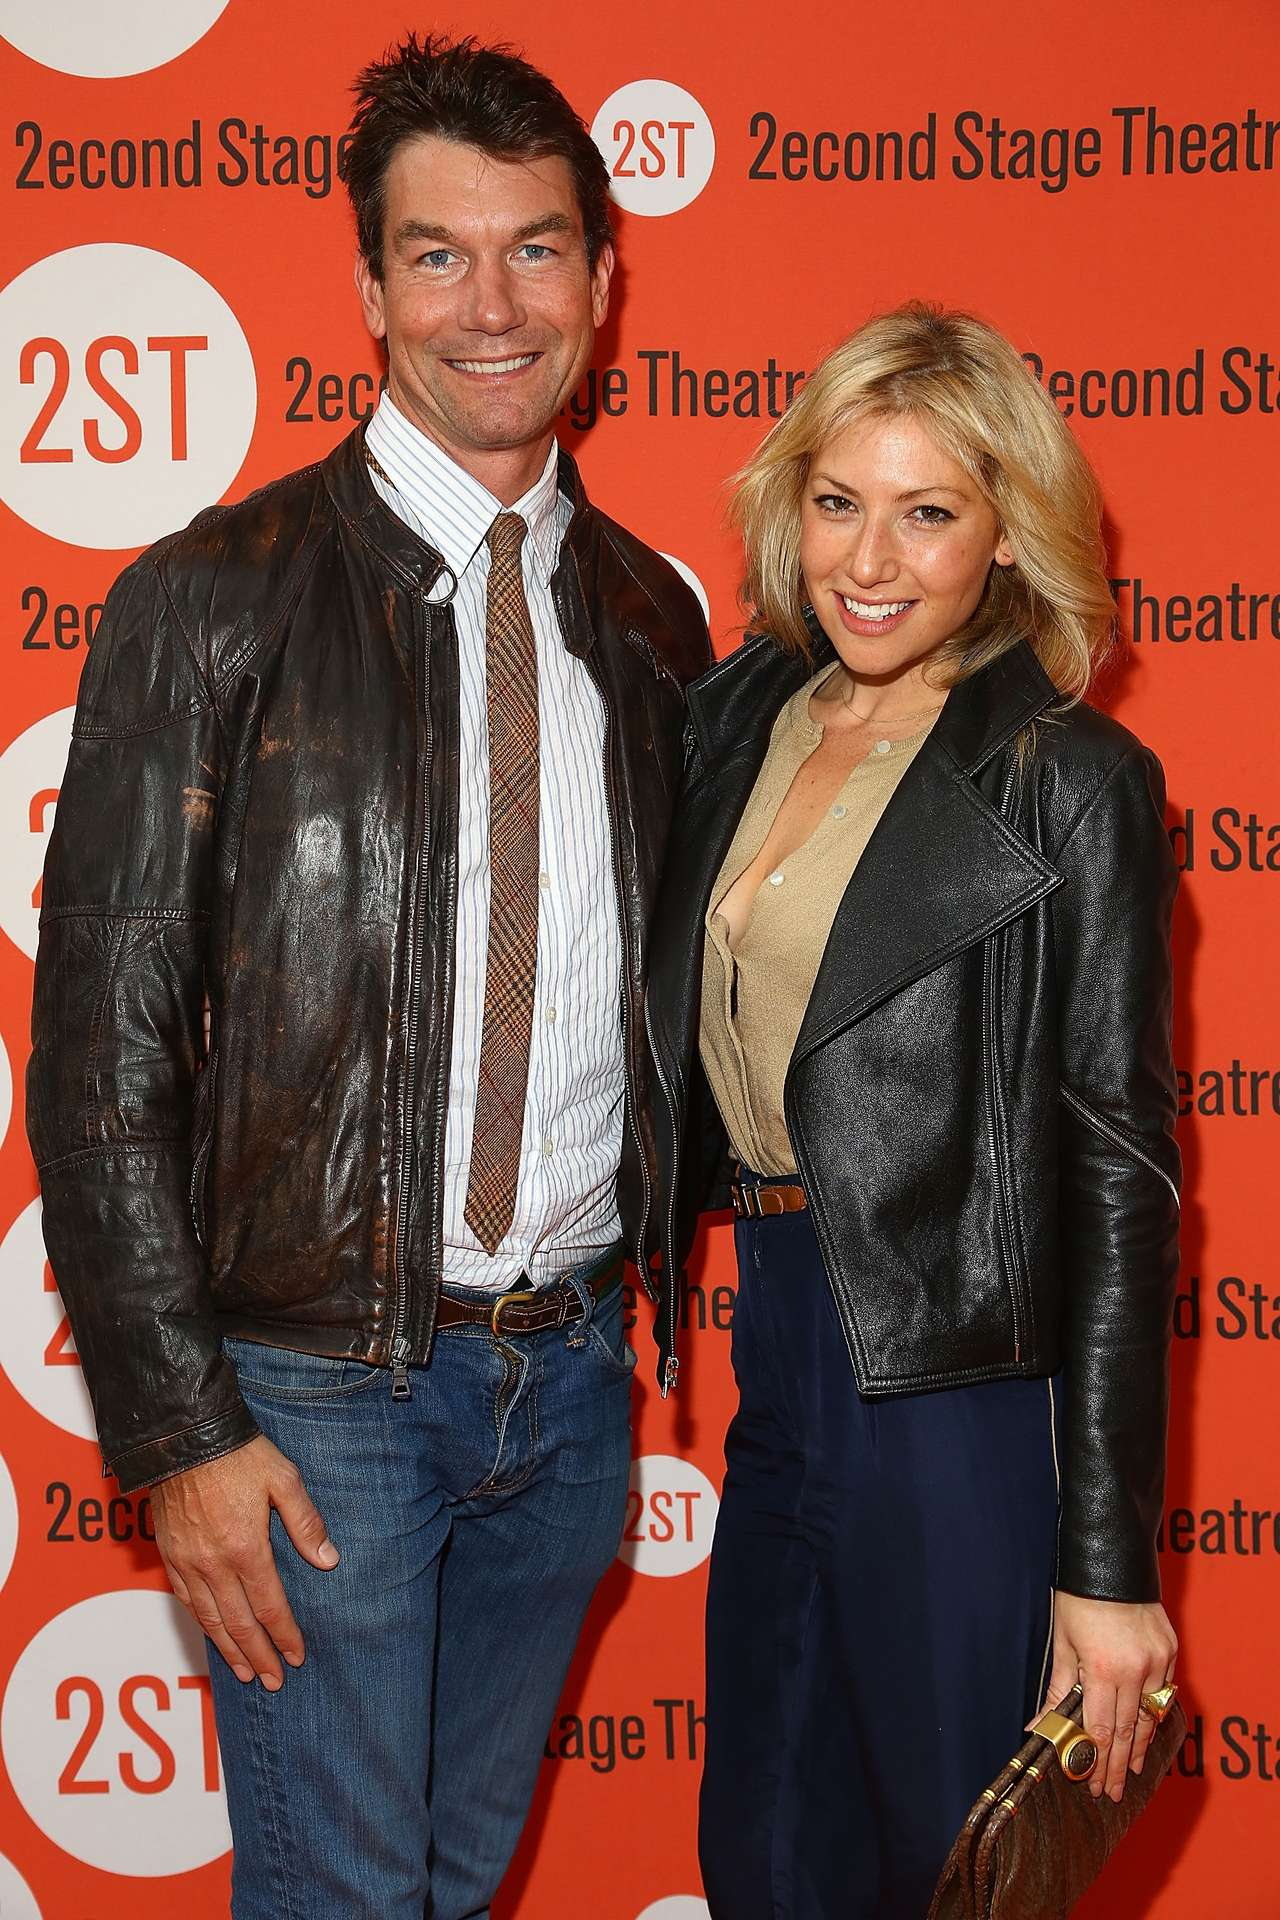 Ari Graynor The Substance Of Fire opening night in New York